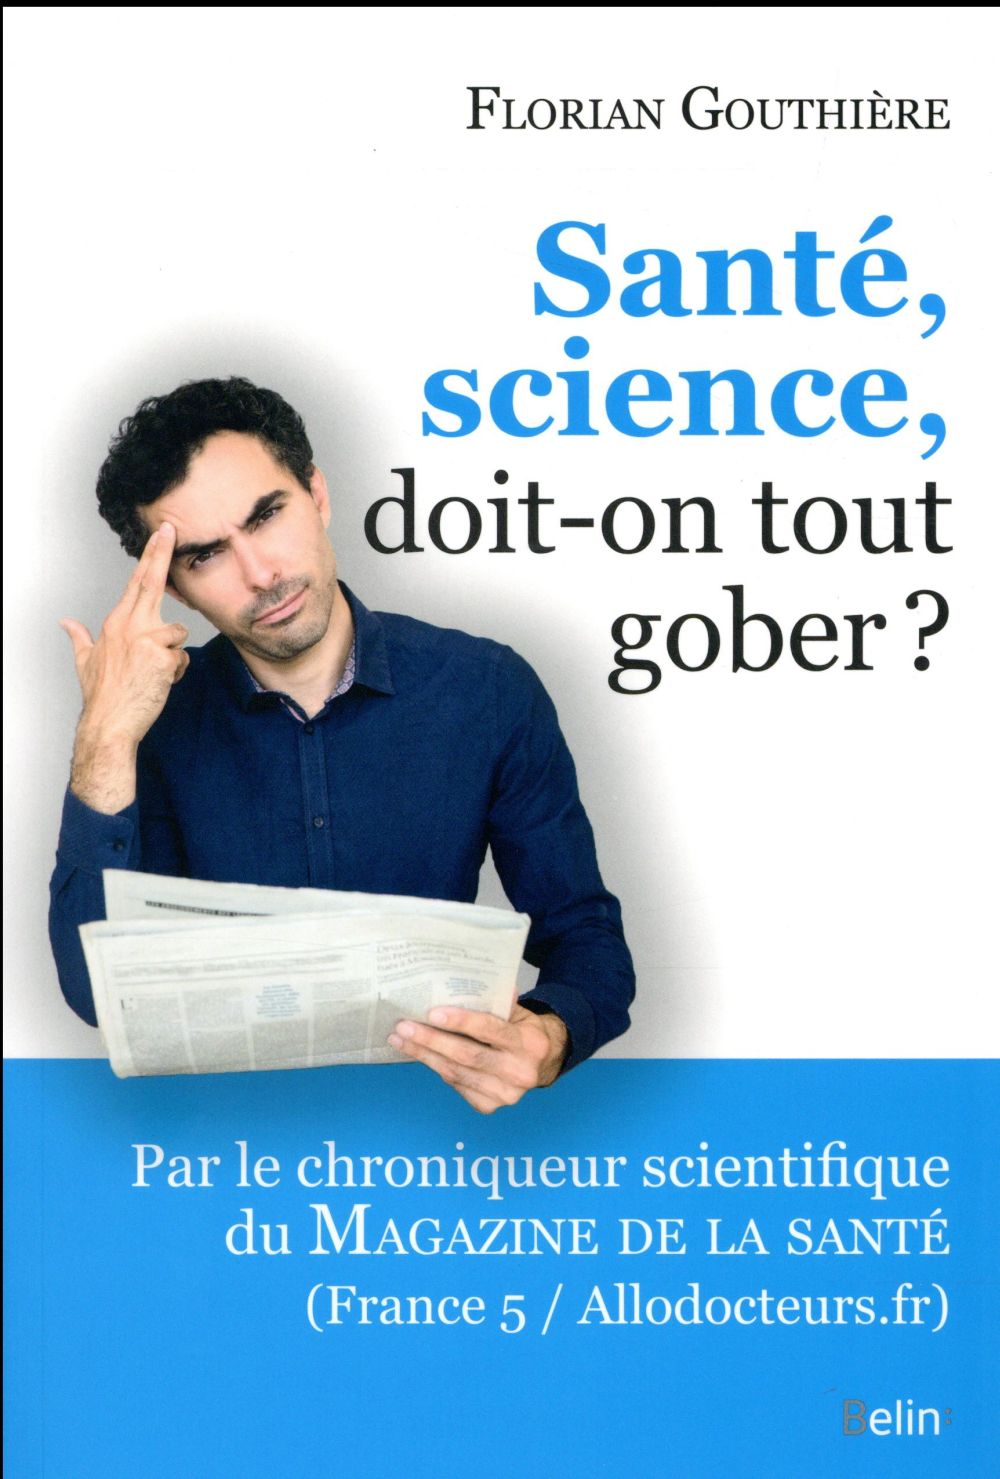 SANTE, SCIENCE, DOIT-ON TOUT GOBER?